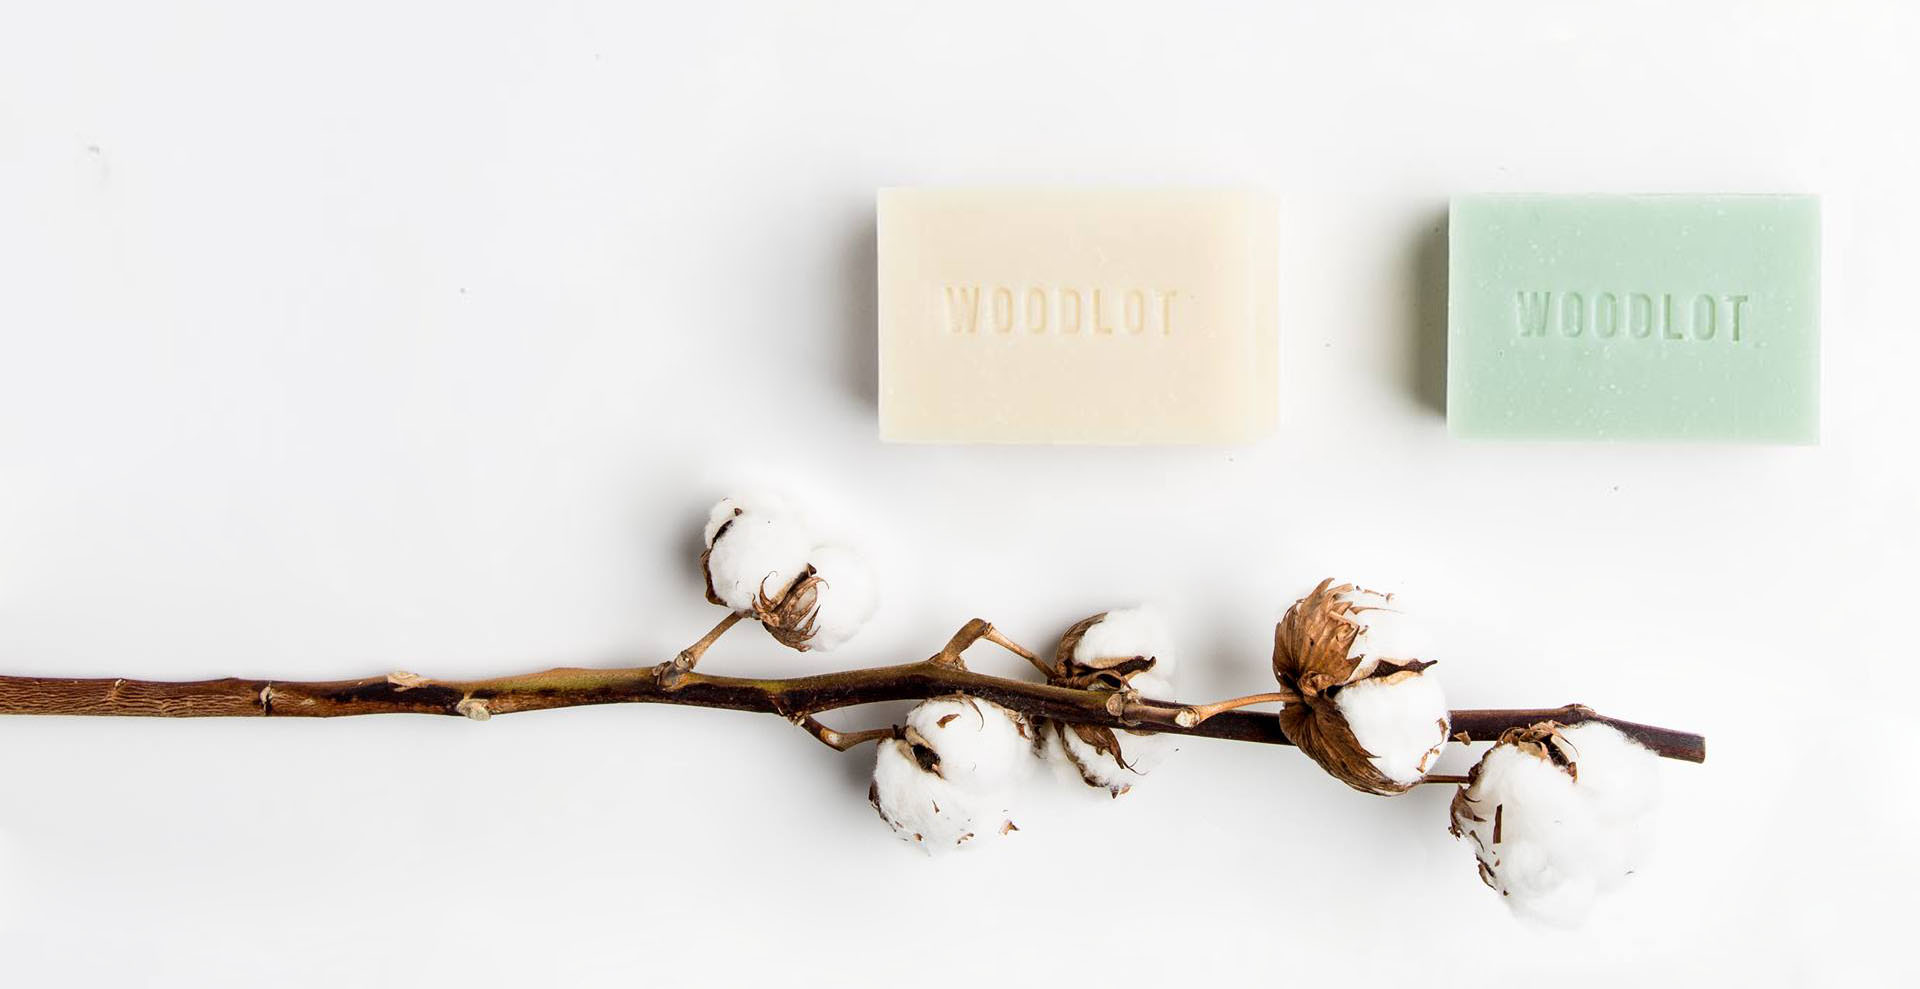 woodlot organics bar soap | Organic Skin Shop online